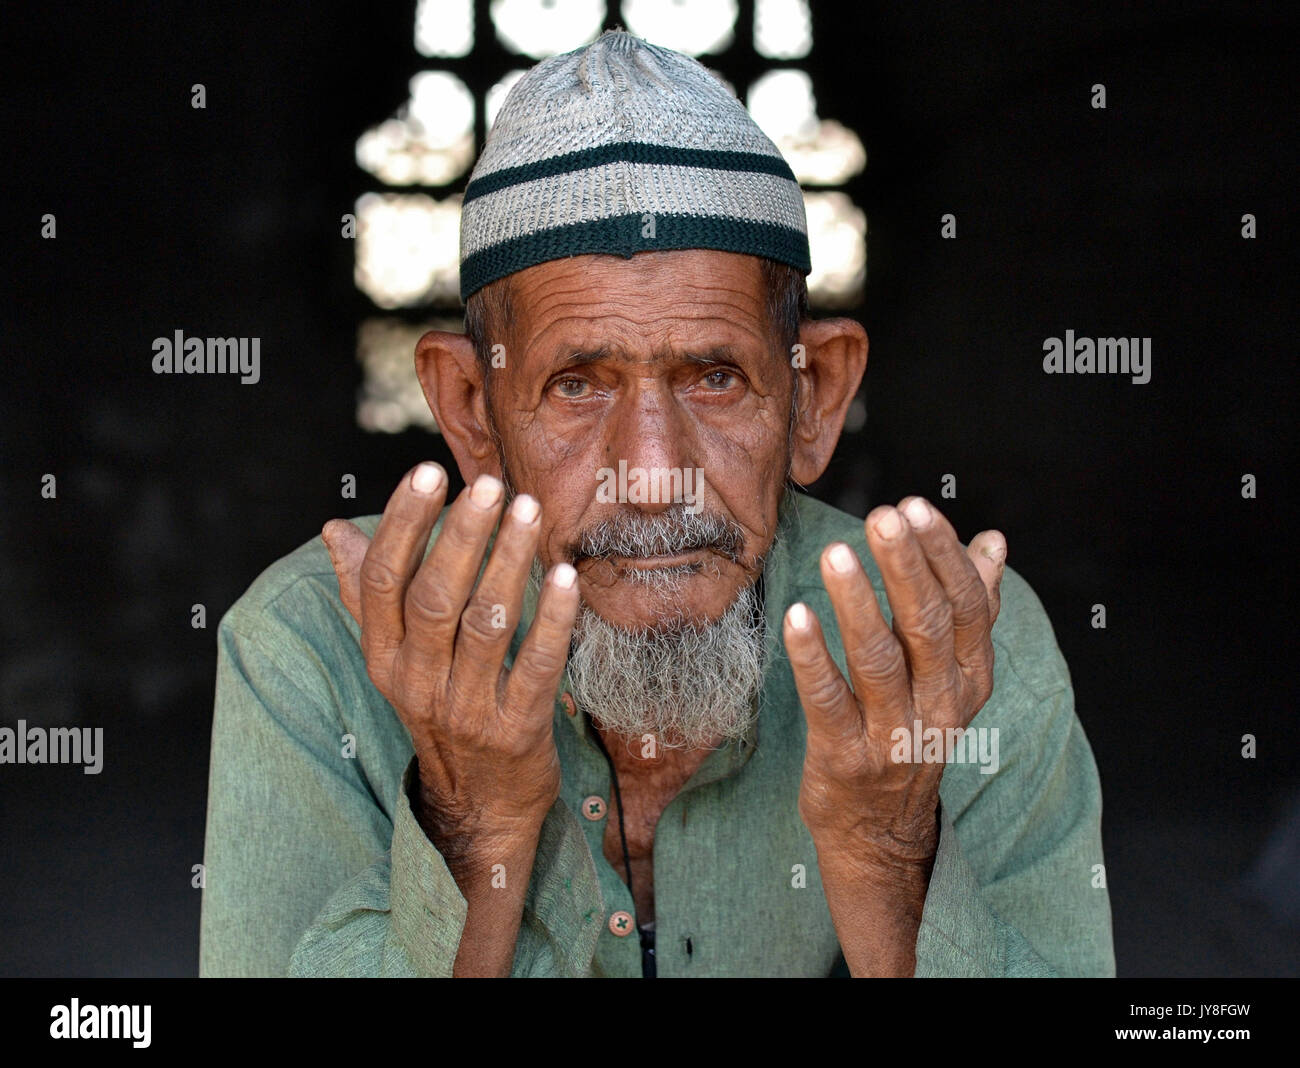 Closeup street portrait of an old Indian Muslim man with lived-in face, wearing an Islamic prayer cap (taqiyah) - Stock Image